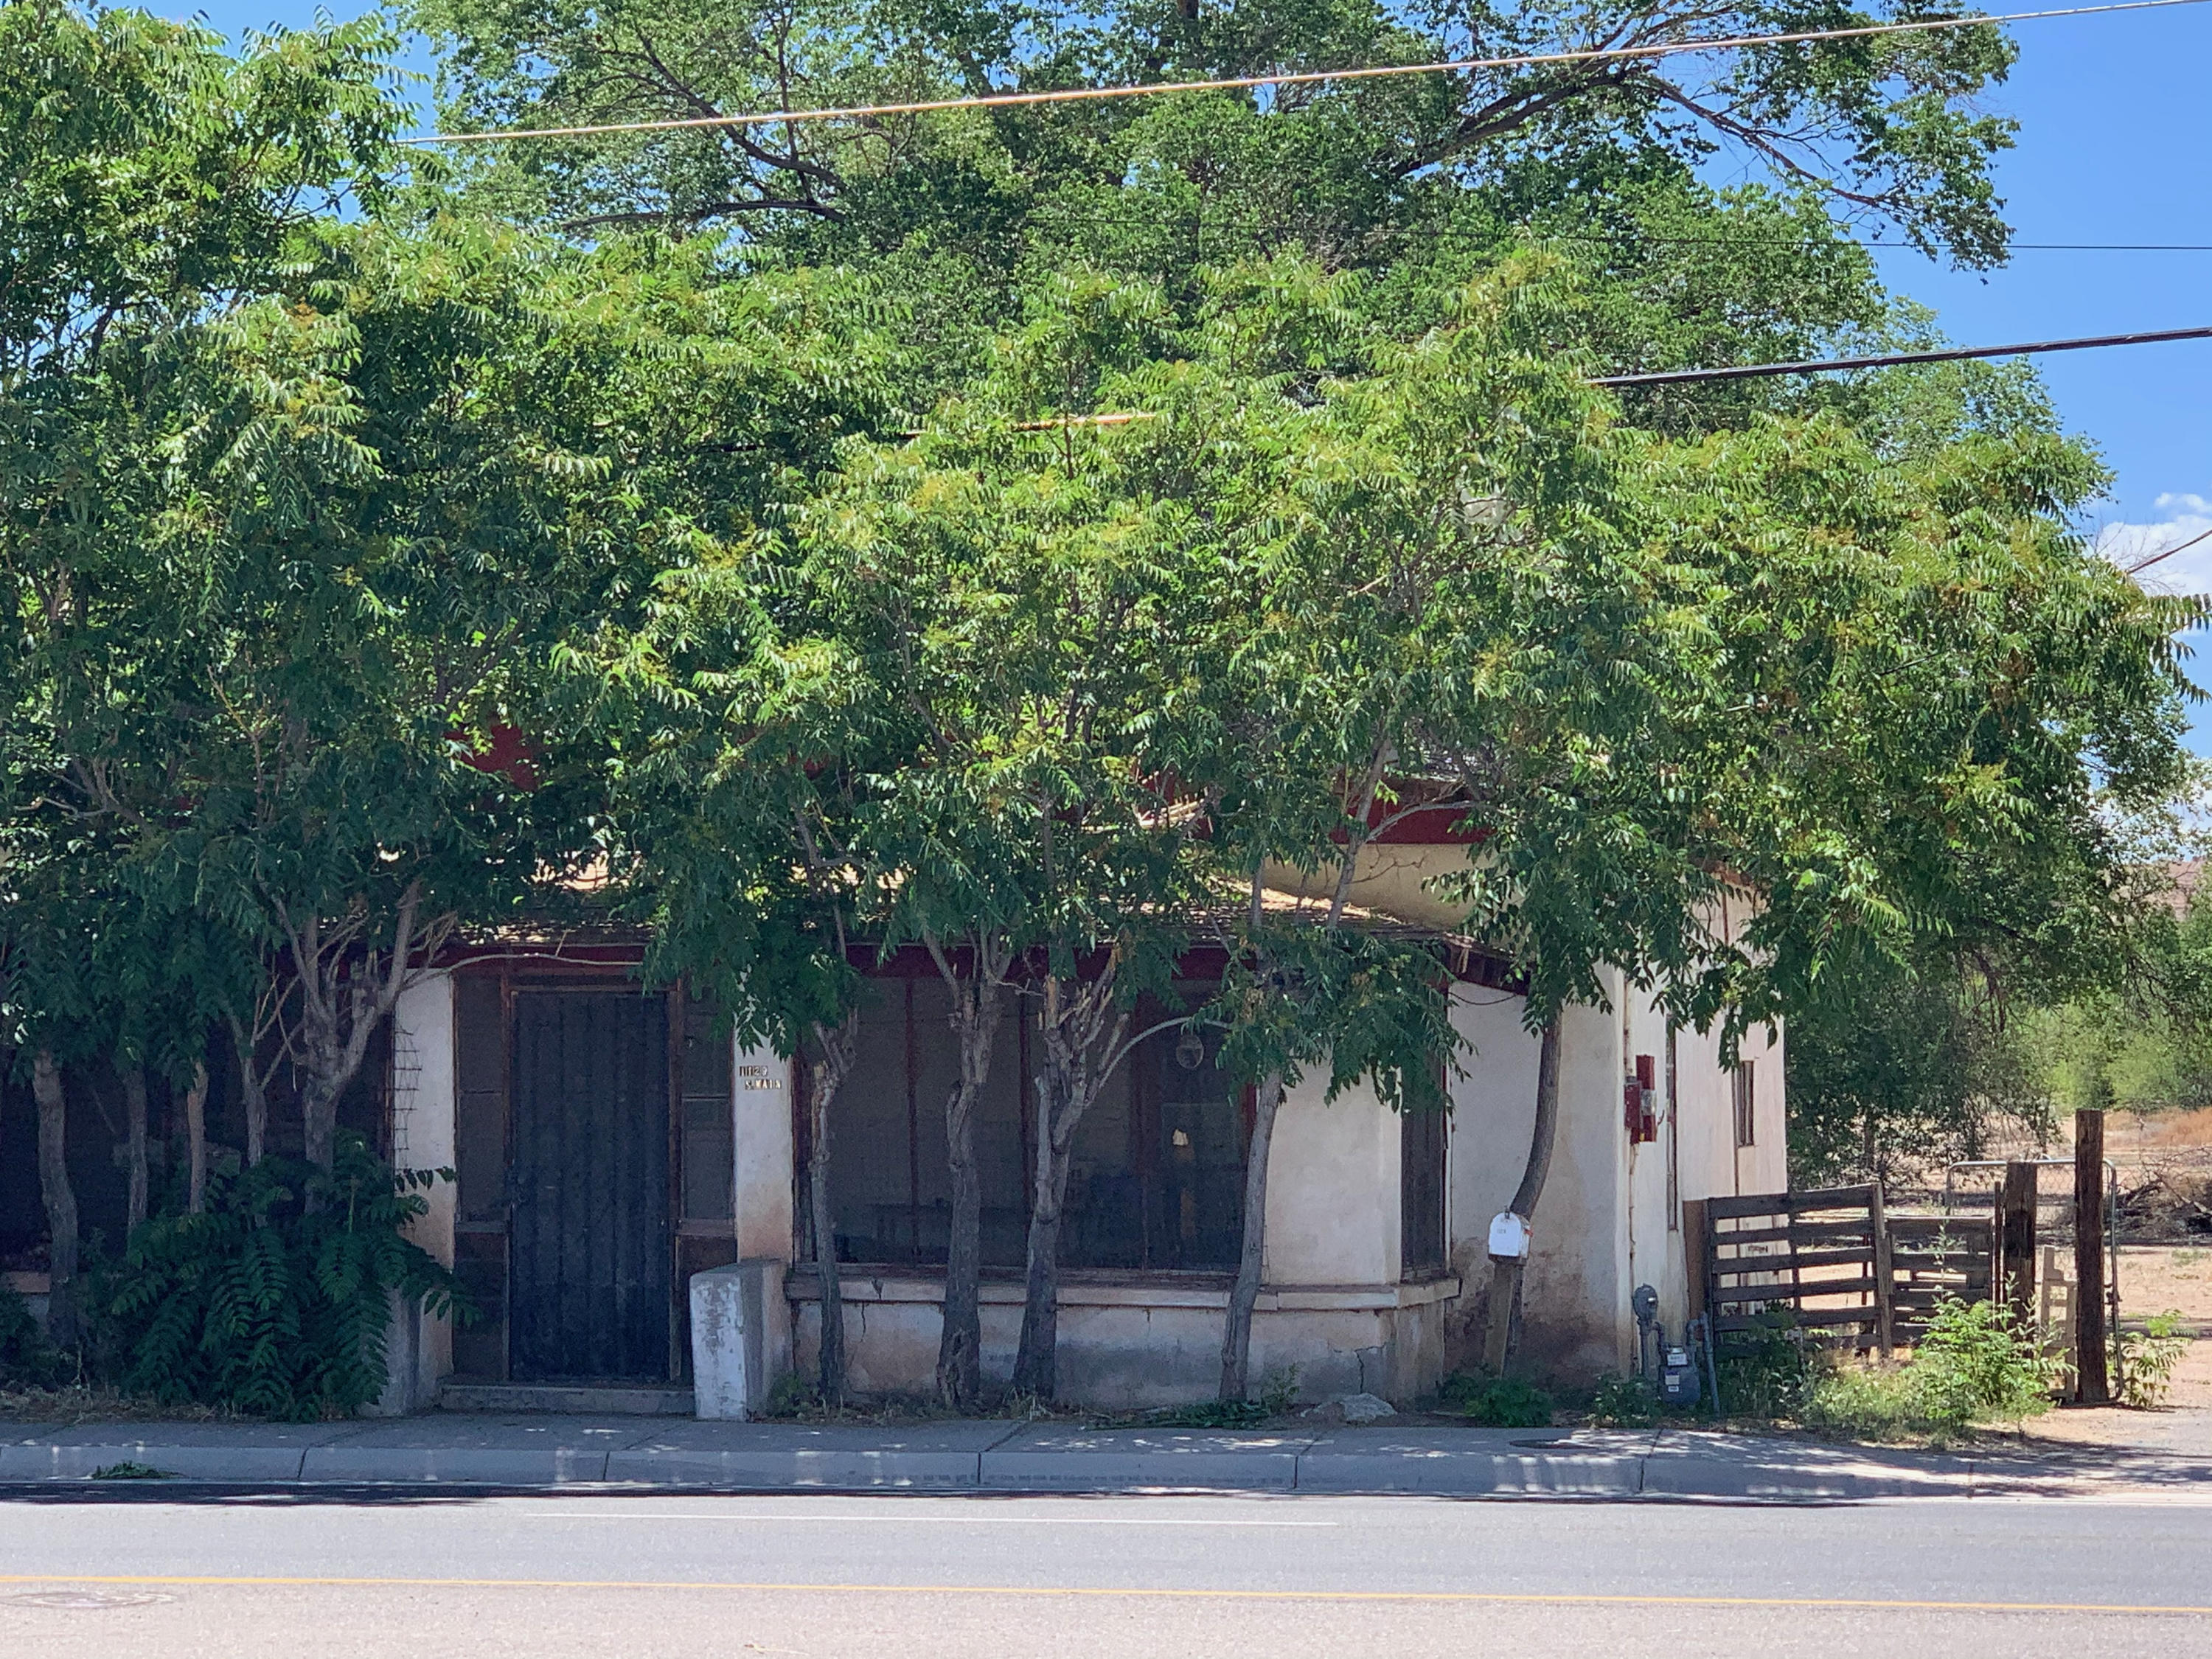 This home located on Main Street in Belen offers unlimited potential. It's zoned Residential or Commercial and with the 3.59 acres the possibilities are endless. The home is a handyman's dream. Schedule your visit today.